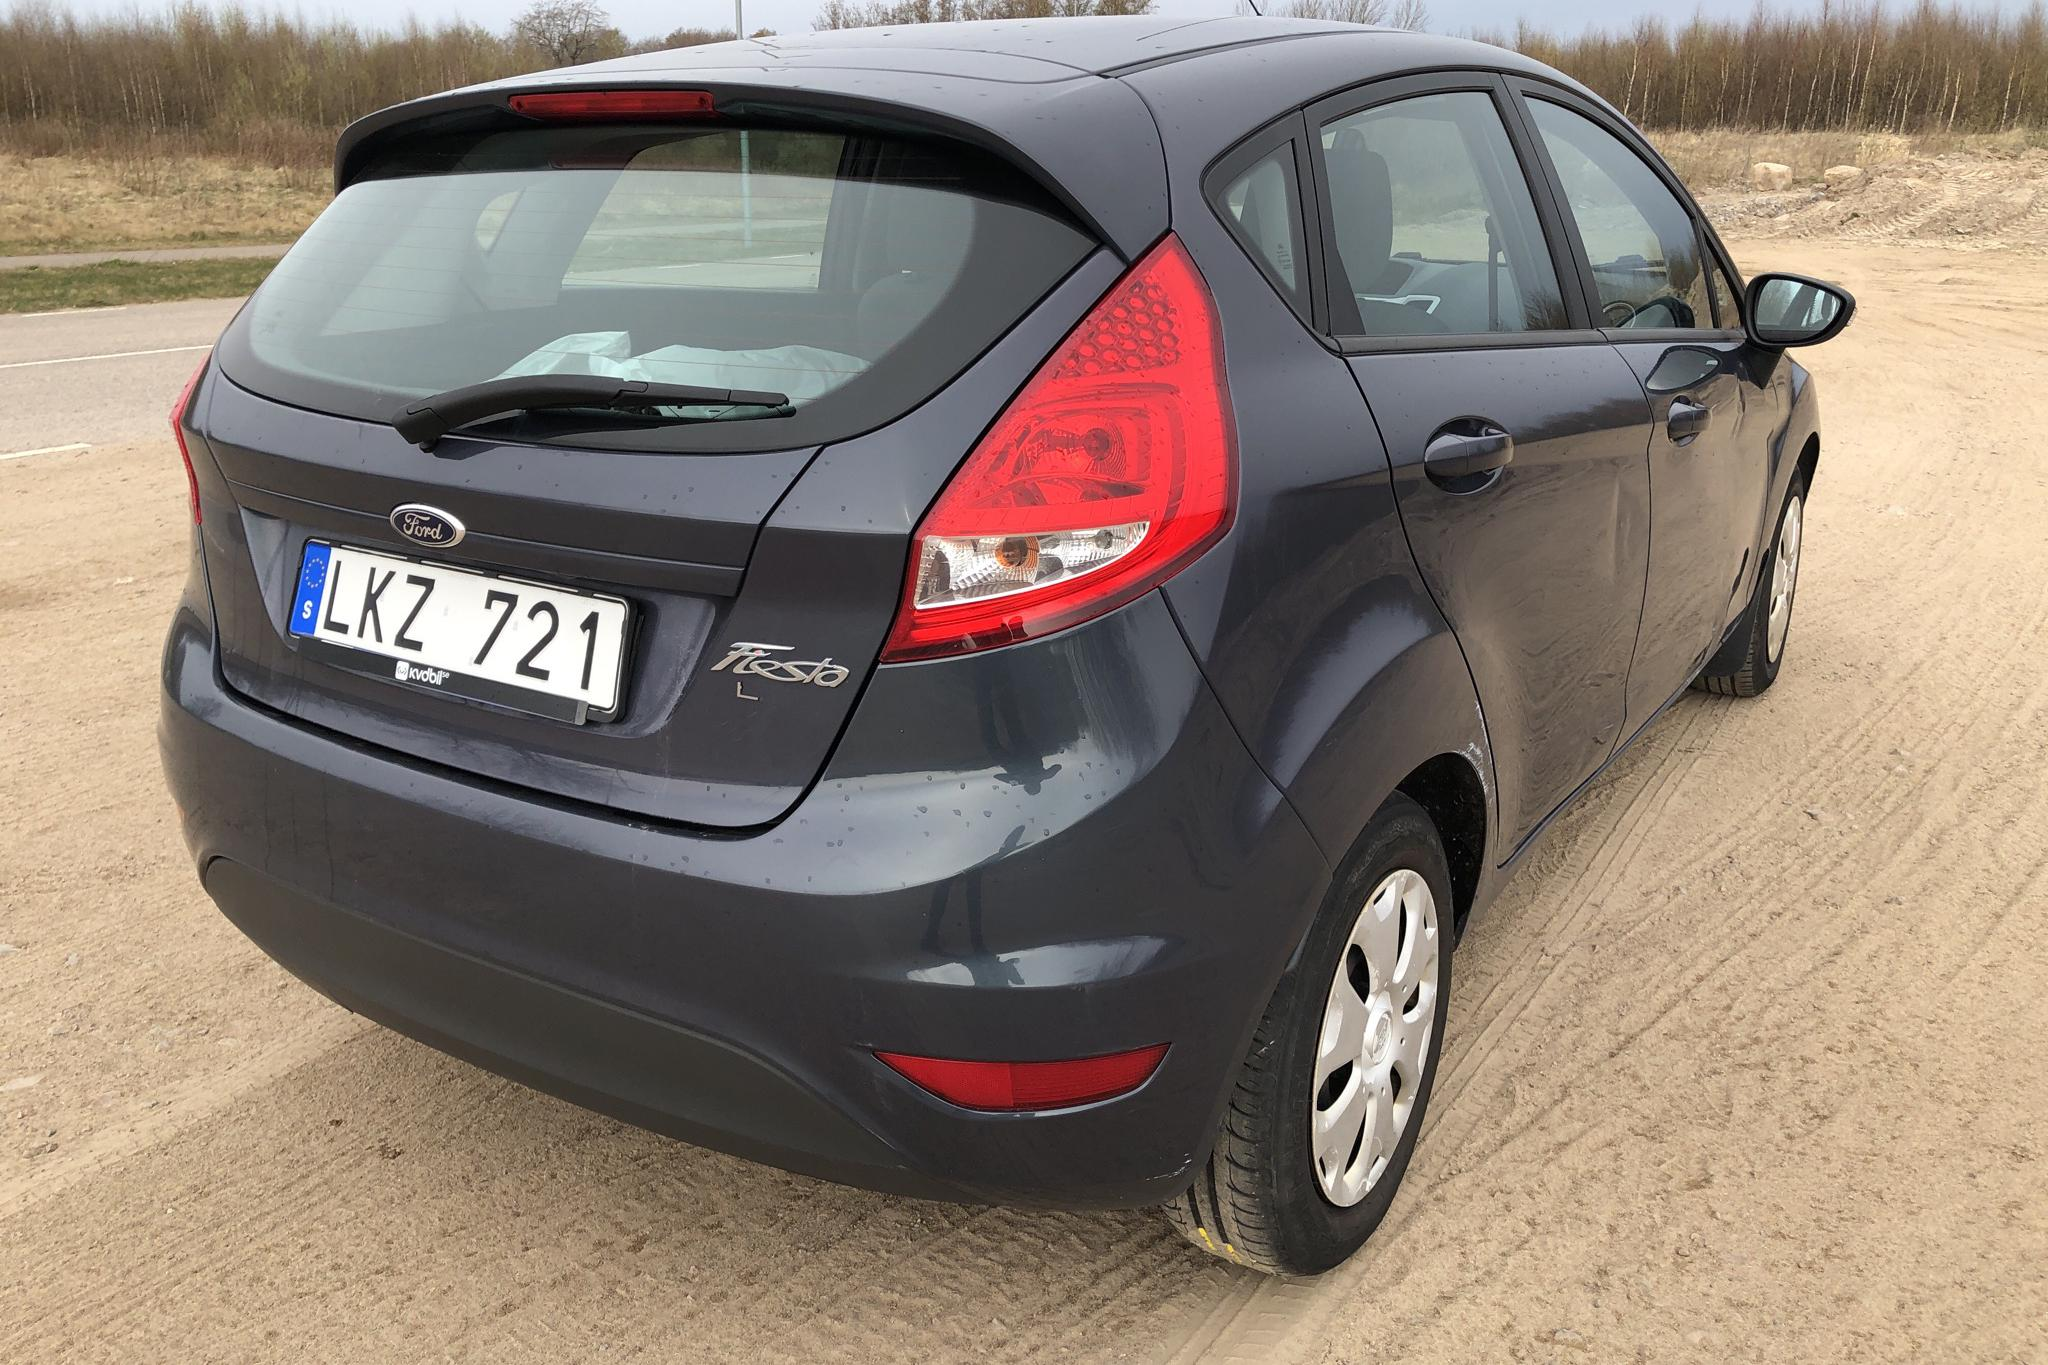 Ford Fiesta 1.6 TDCi 5dr (95hk) - 164 820 km - Manual - gray - 2012